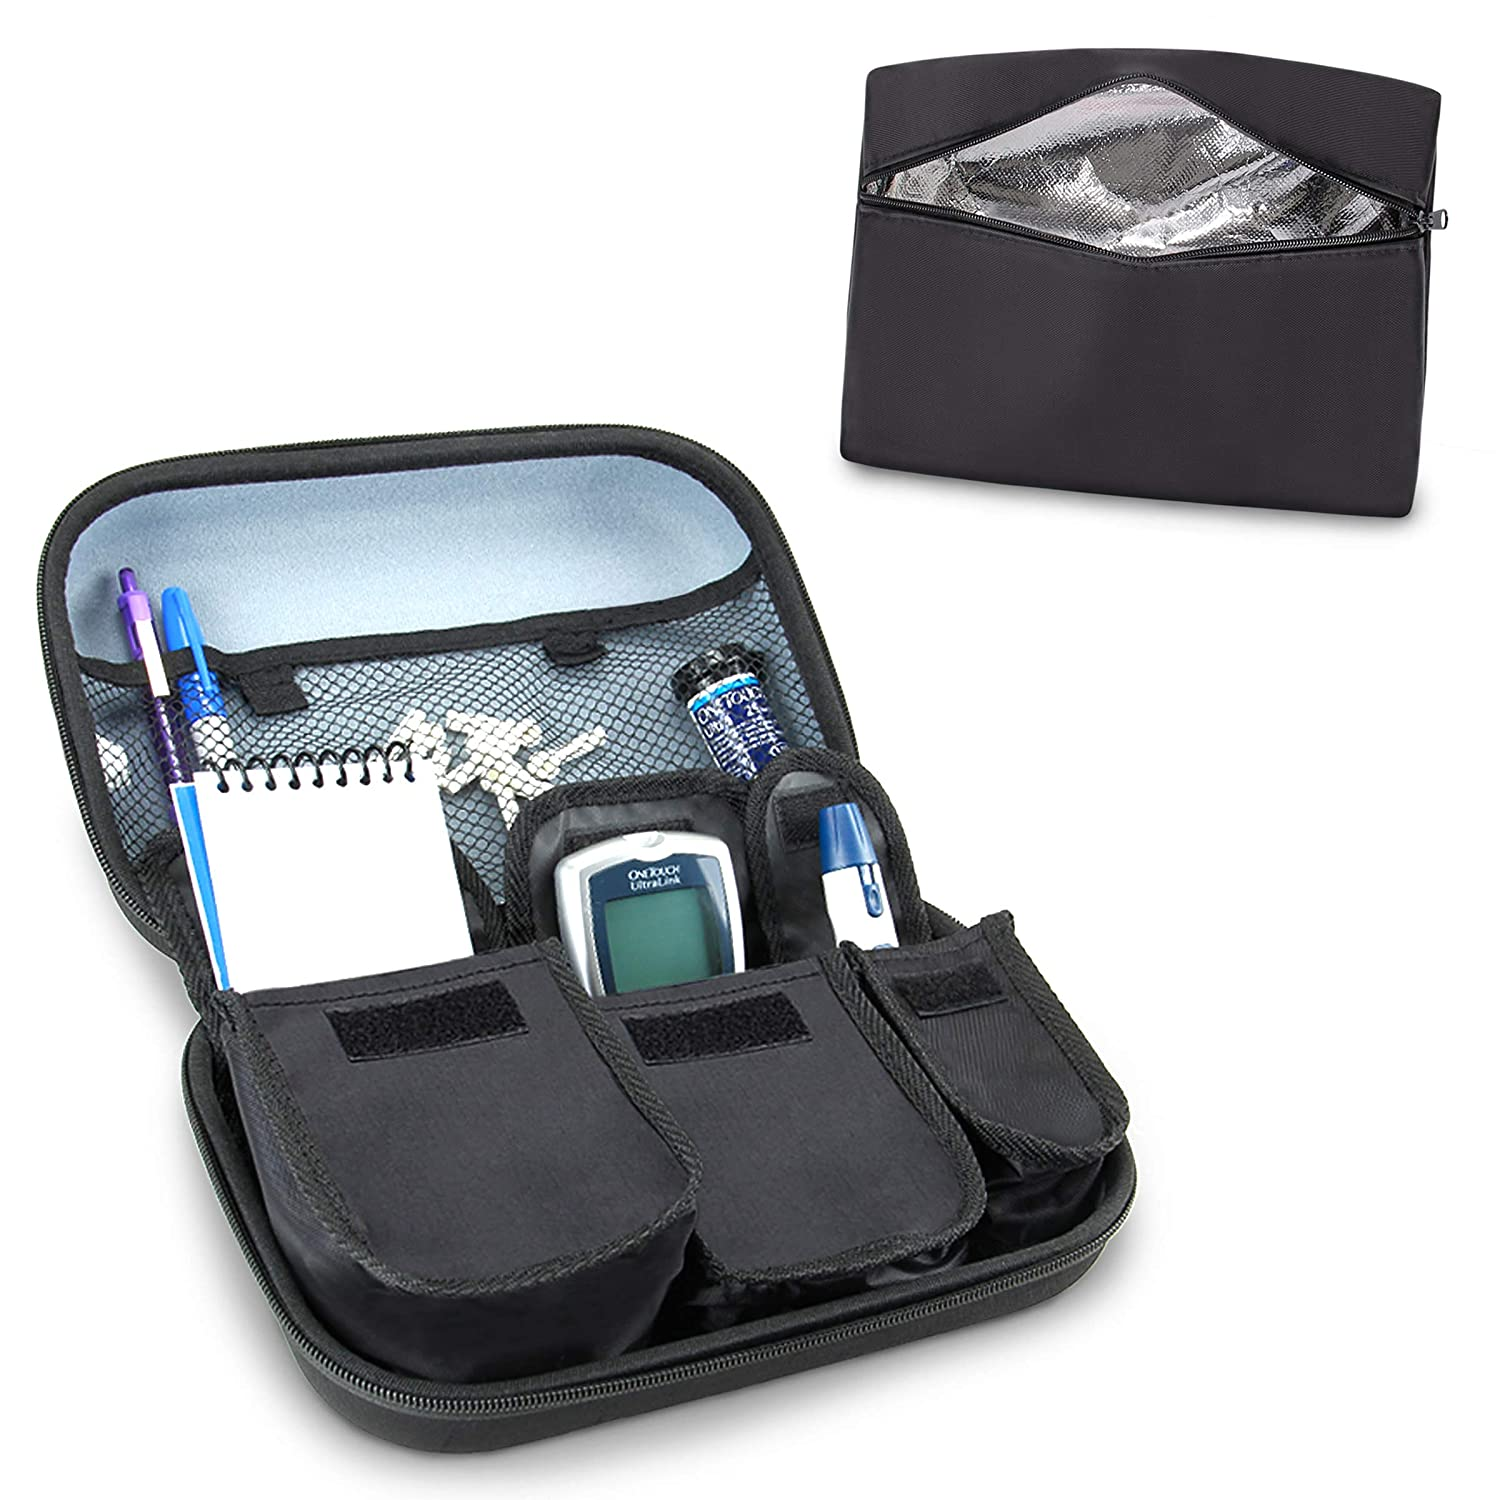 USA Gear Diabetic Supply Carrying Case with Insulin Travel Case Cooler - Organizer for Blood Glucose Monitoring Systems, Pens, Syringe Case, Insulin Case & More - Black + Insulin Cooling Case